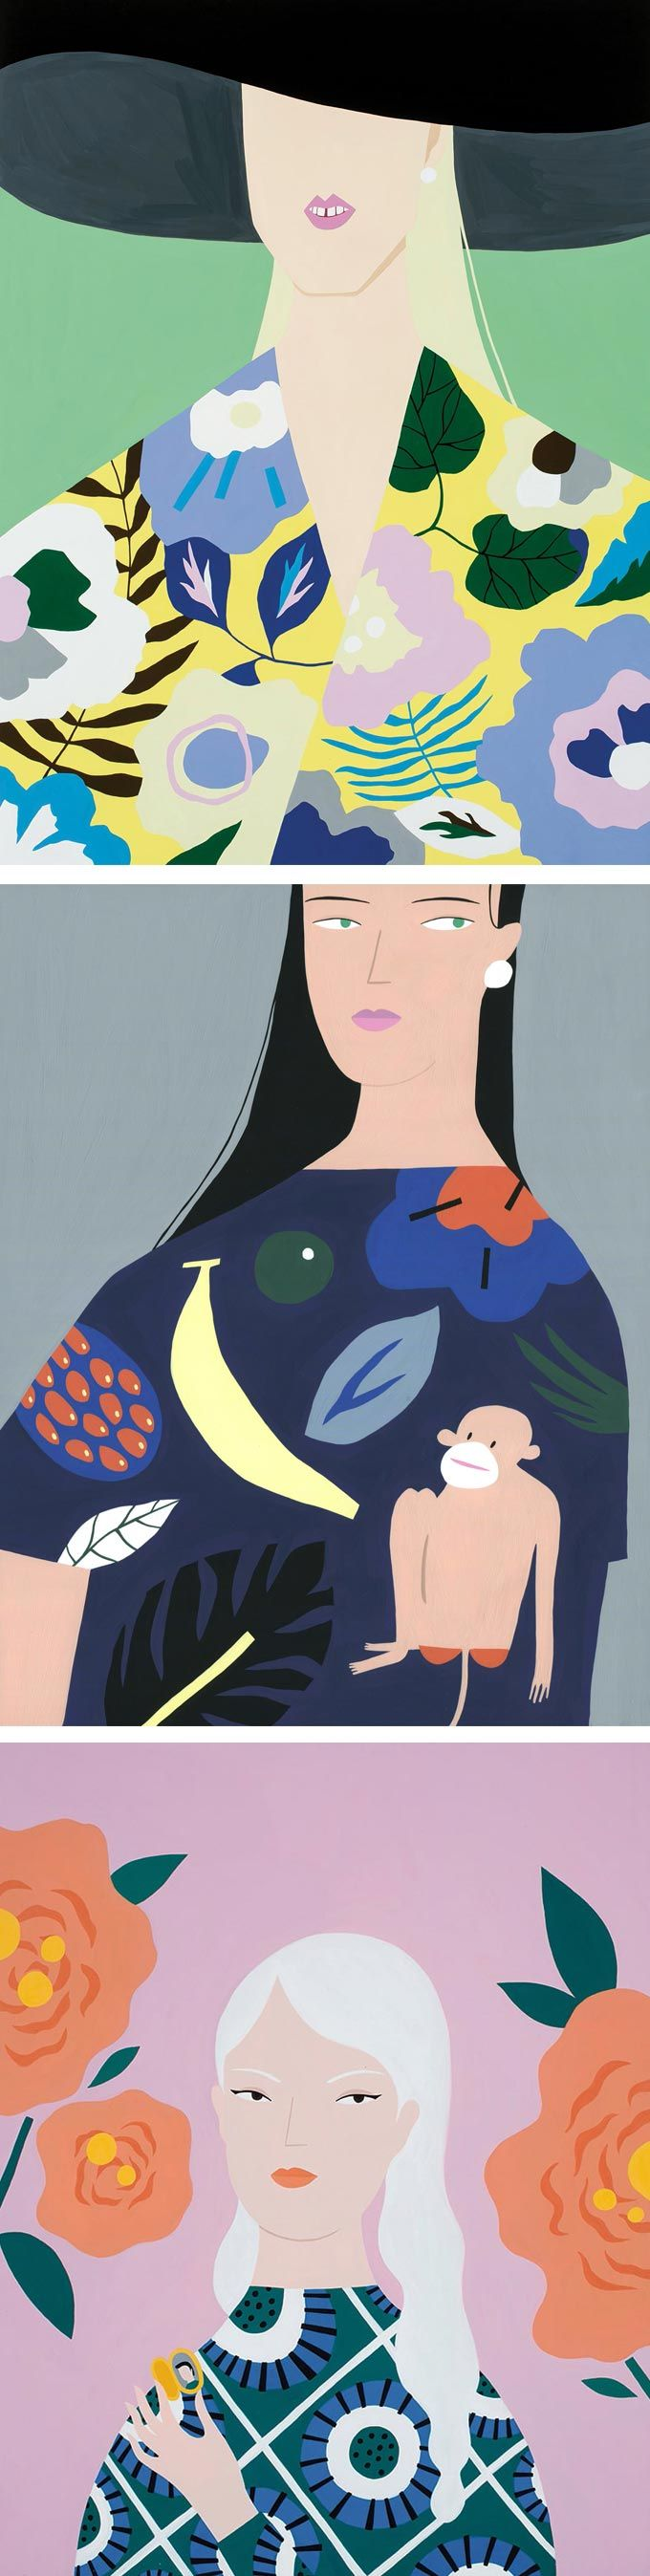 Well-traveled illustrator Ayumi Takahashi spends a month out of the year learning about other cultures. This influences her colorful portraits.